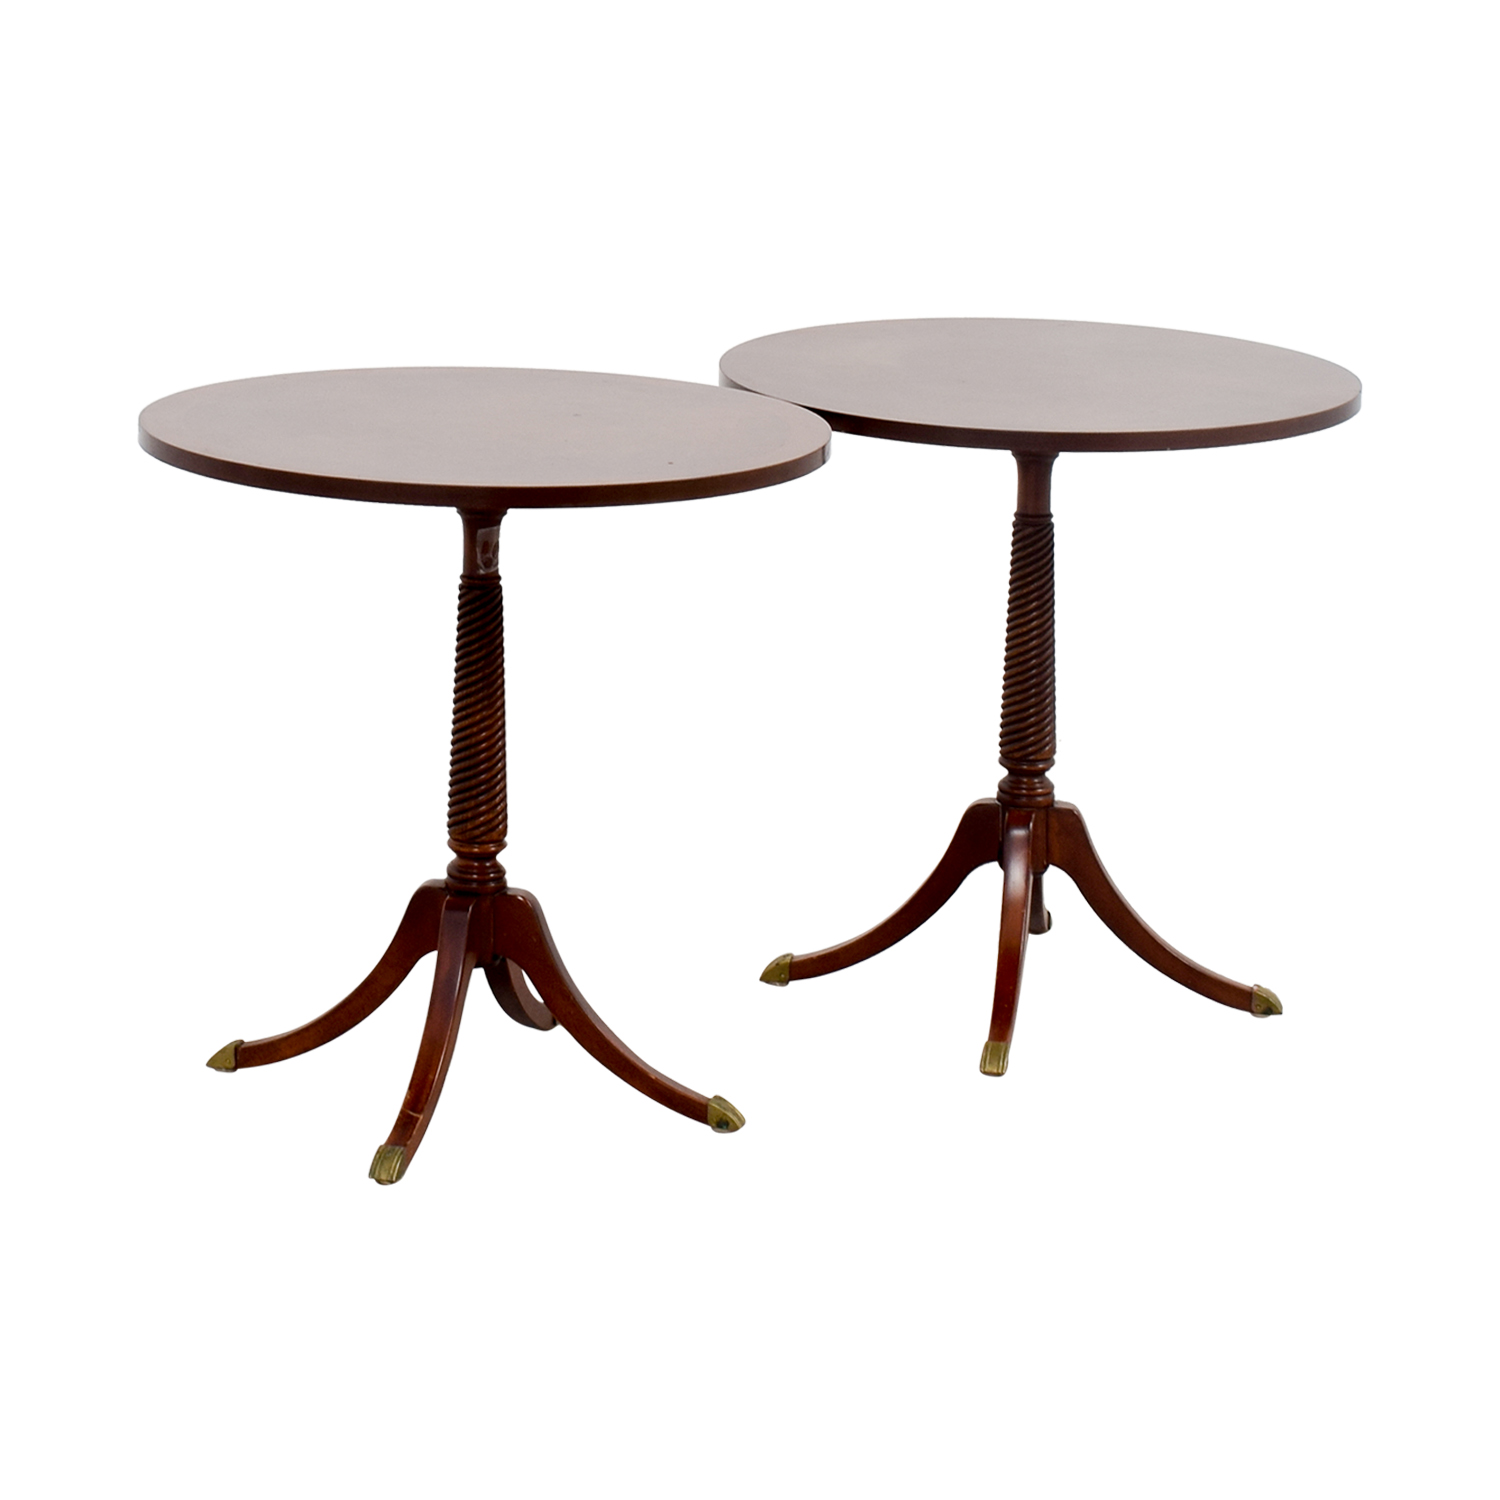 Furniture Masters Furniture Masters Round Wood End Tables nyc